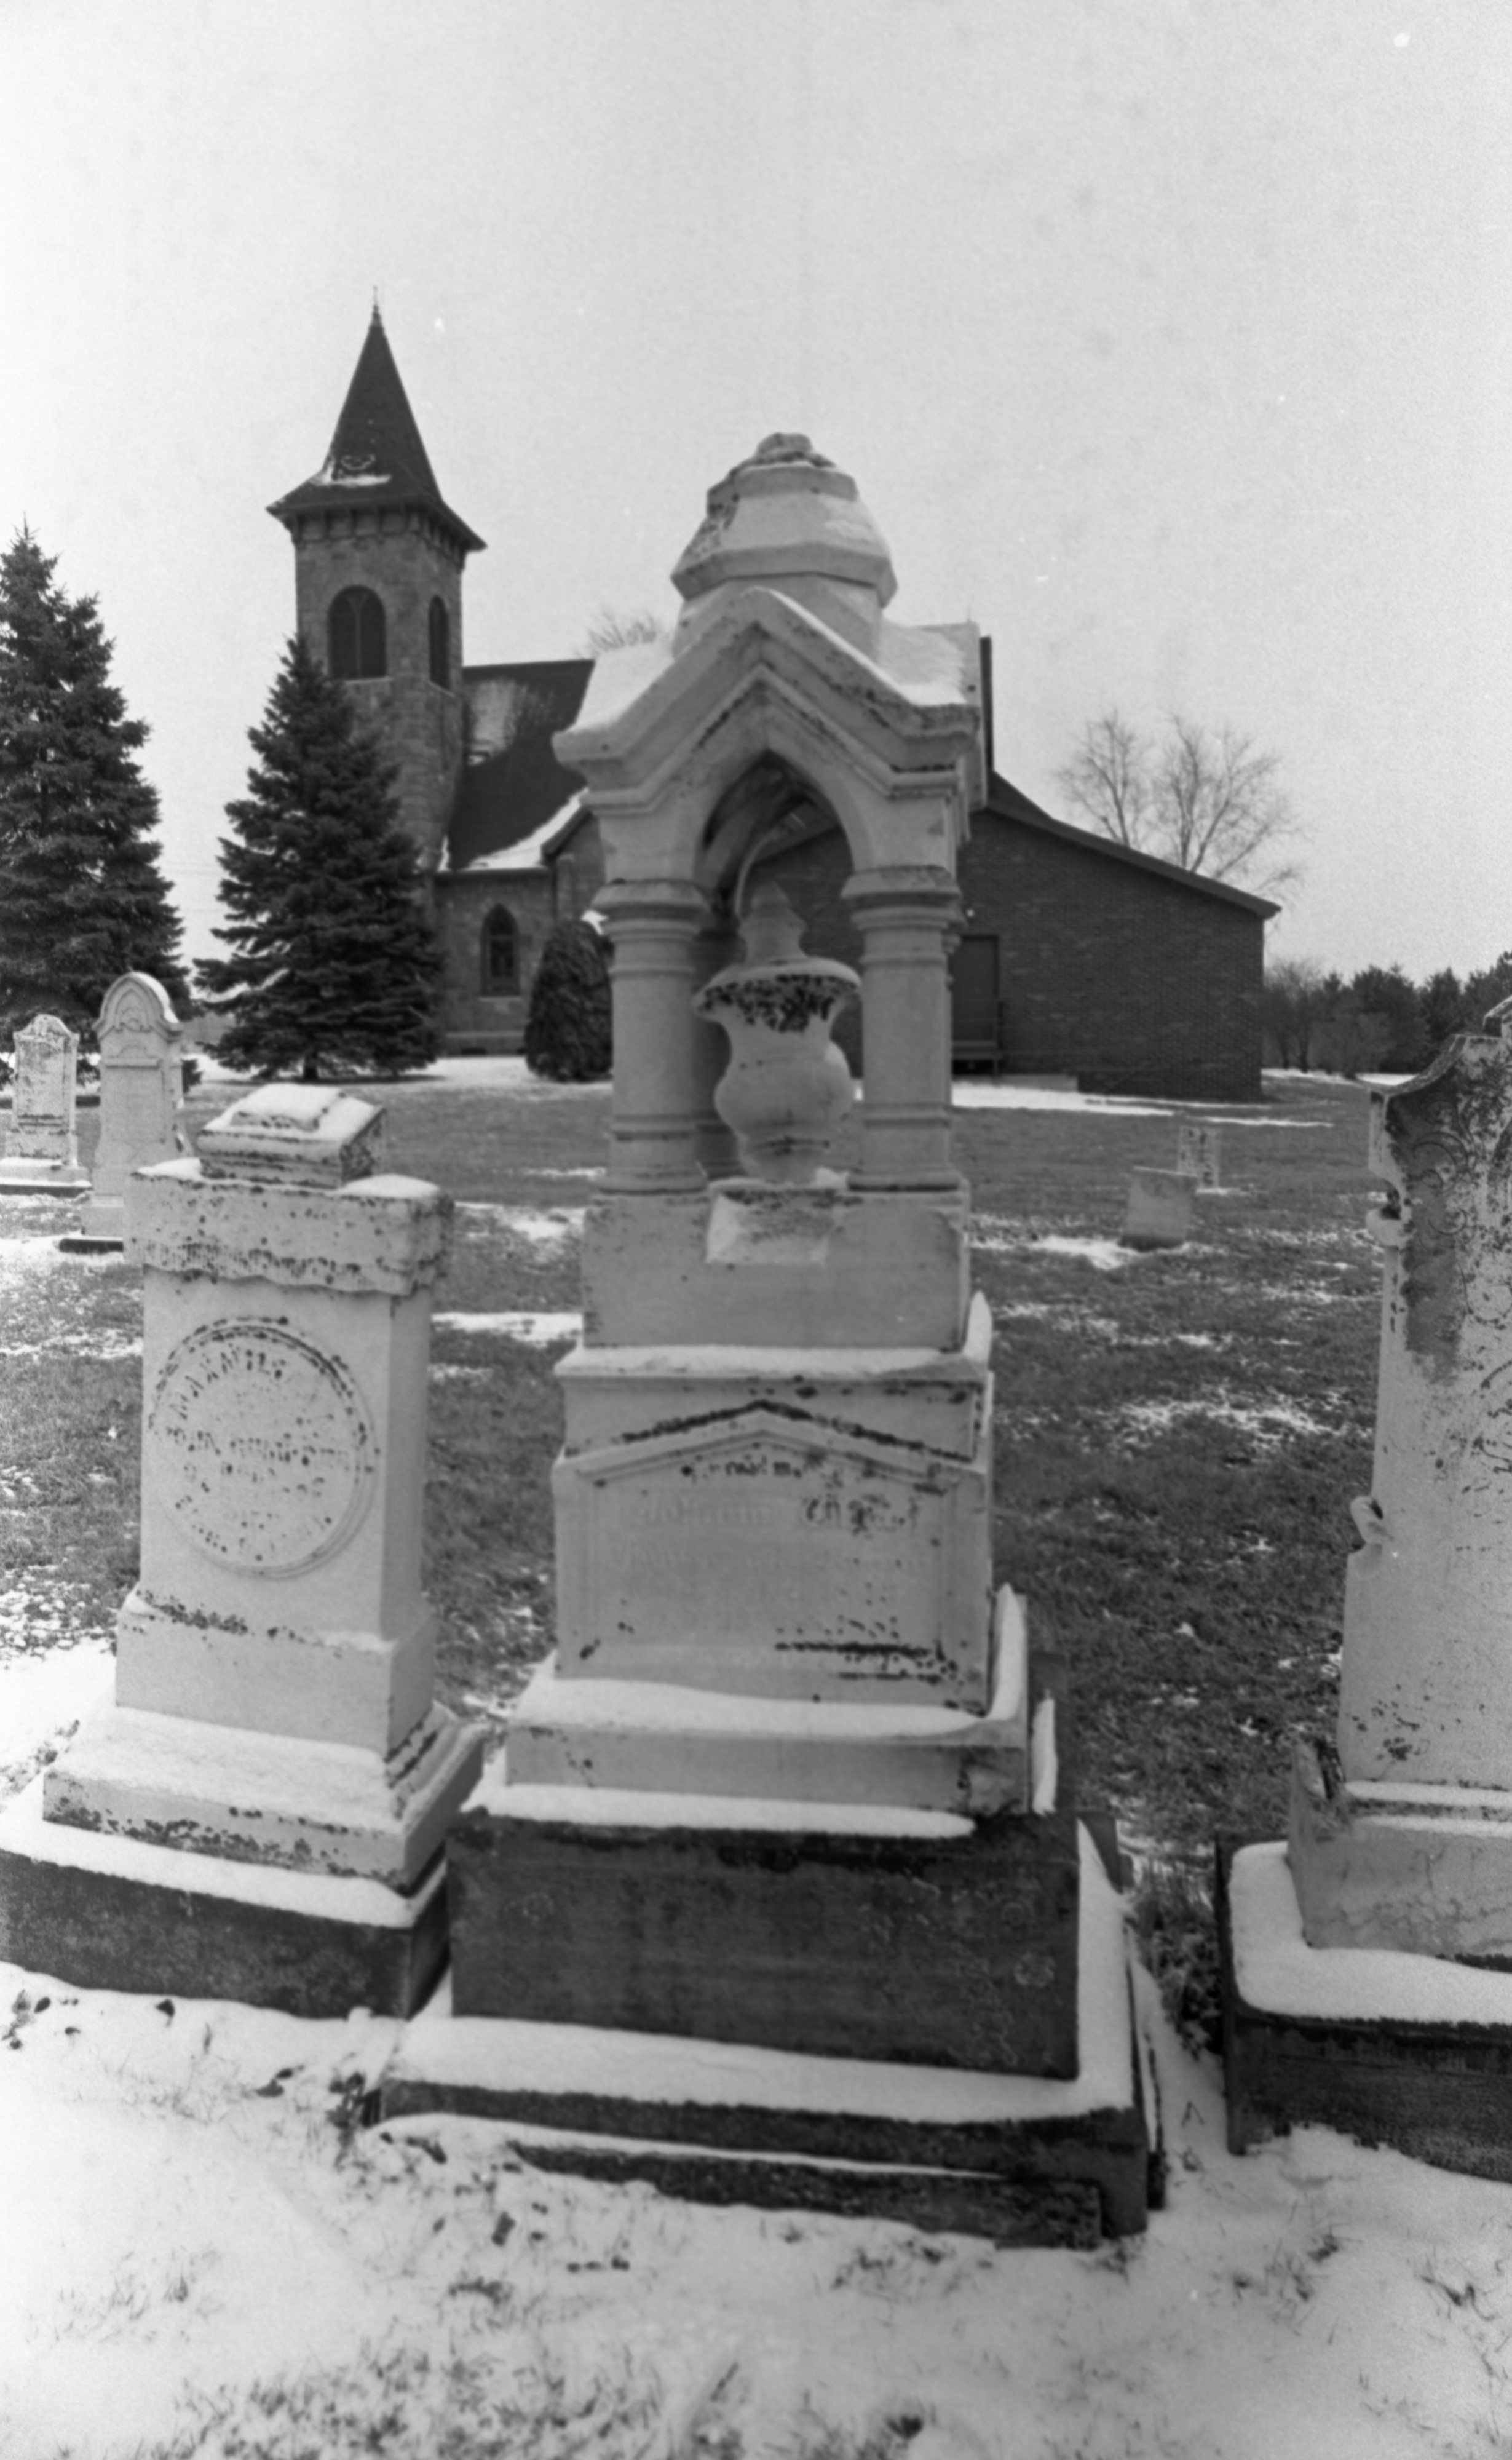 The Grave Of Johana Haarer In Bethel Church Cemetery, March 1980 image